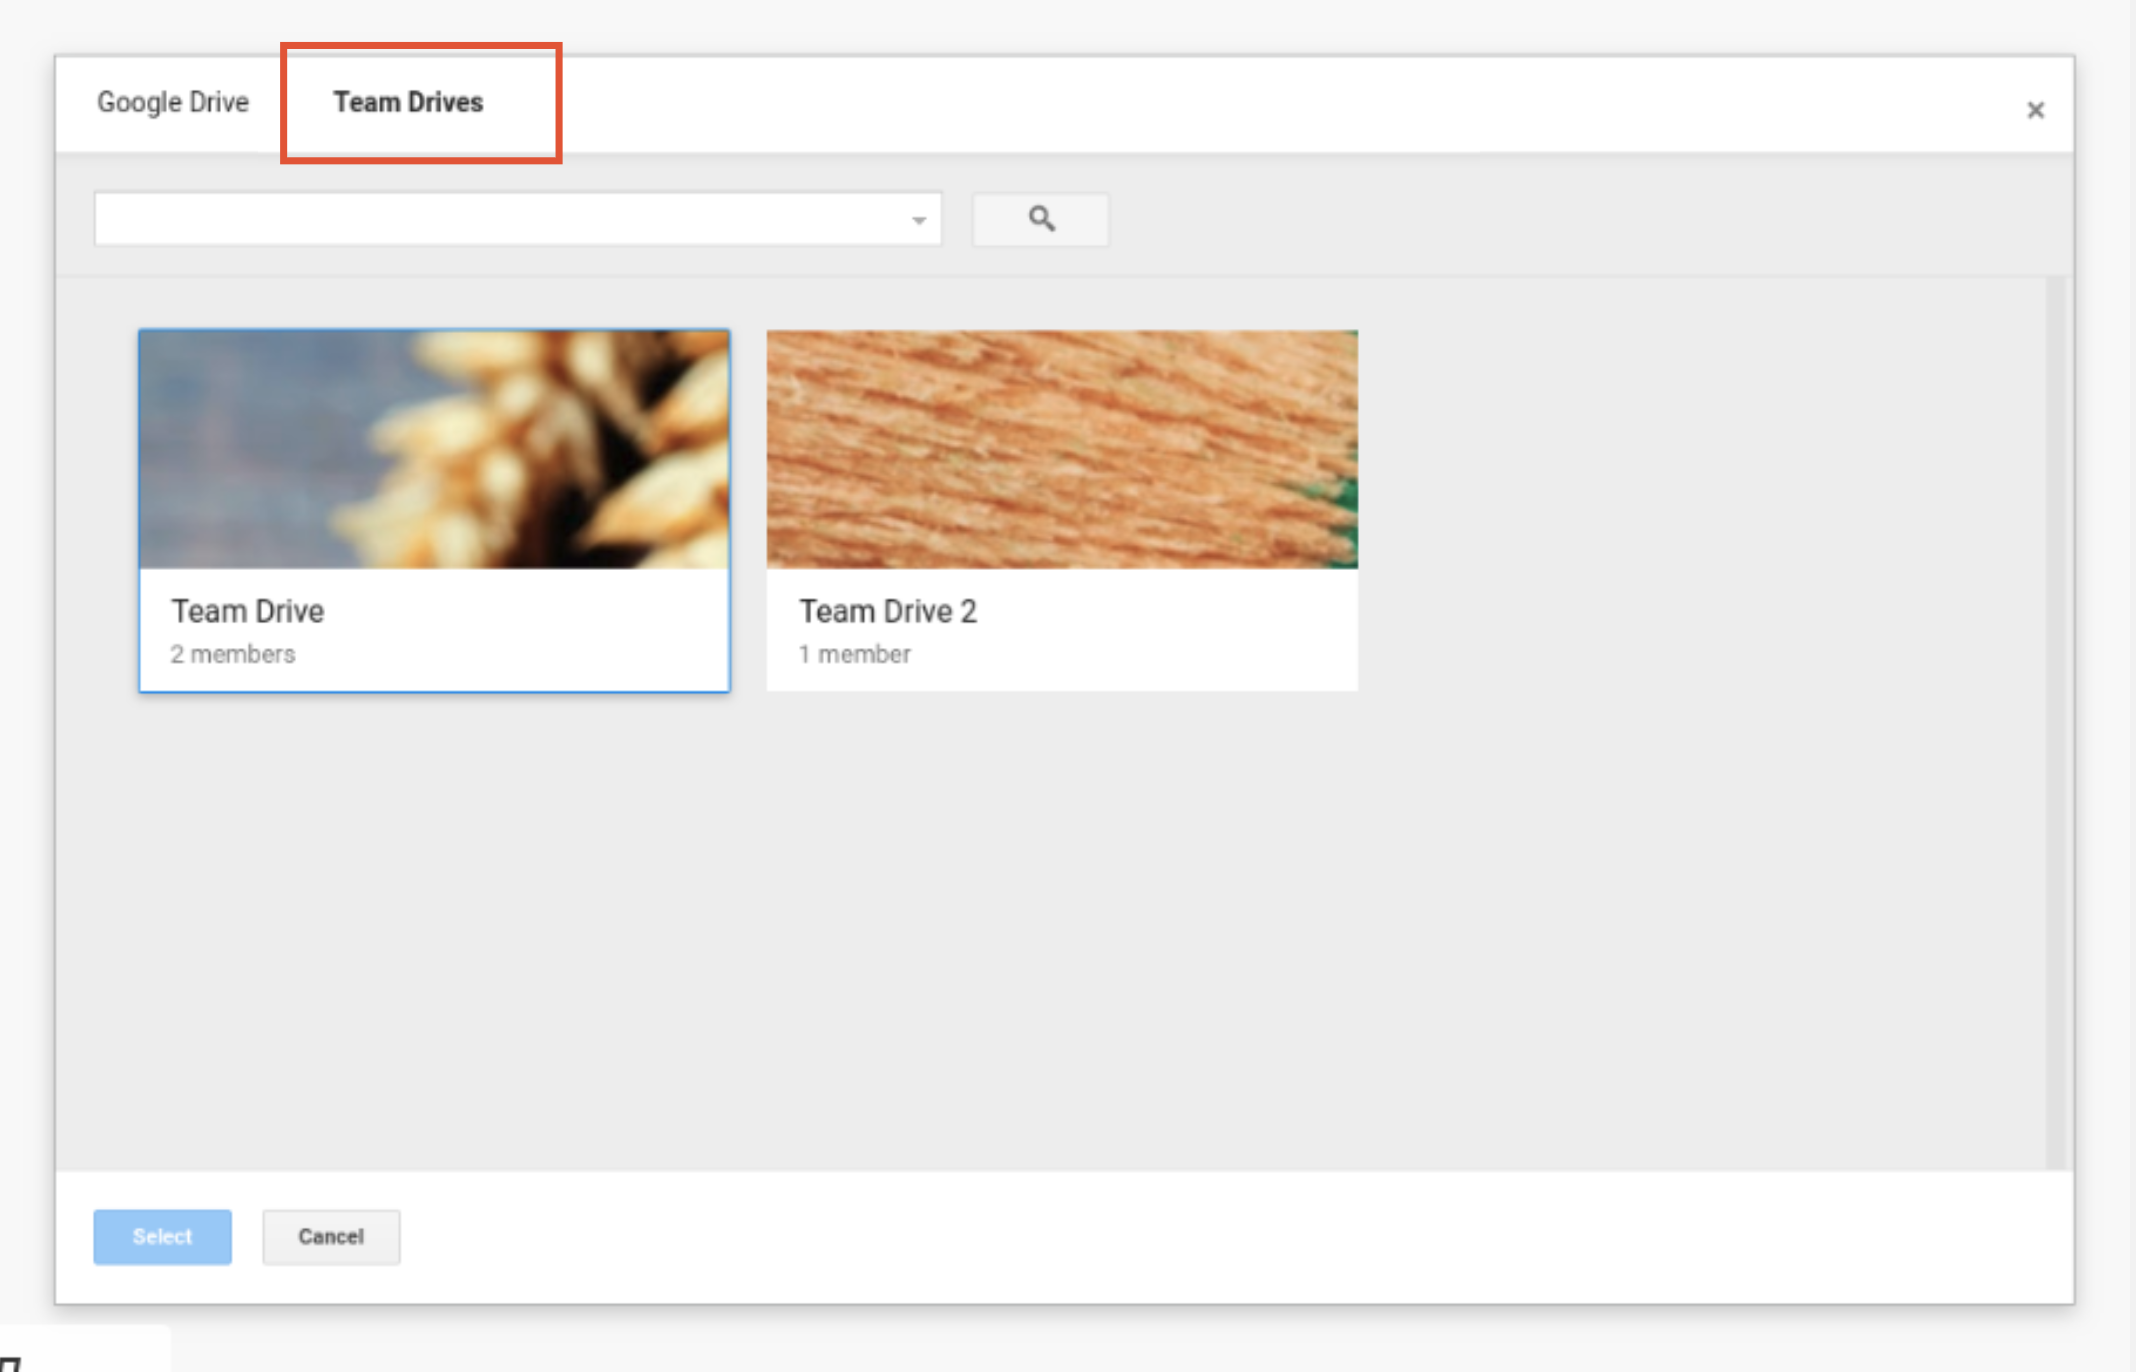 Google Drive – Miro Support & Help Center